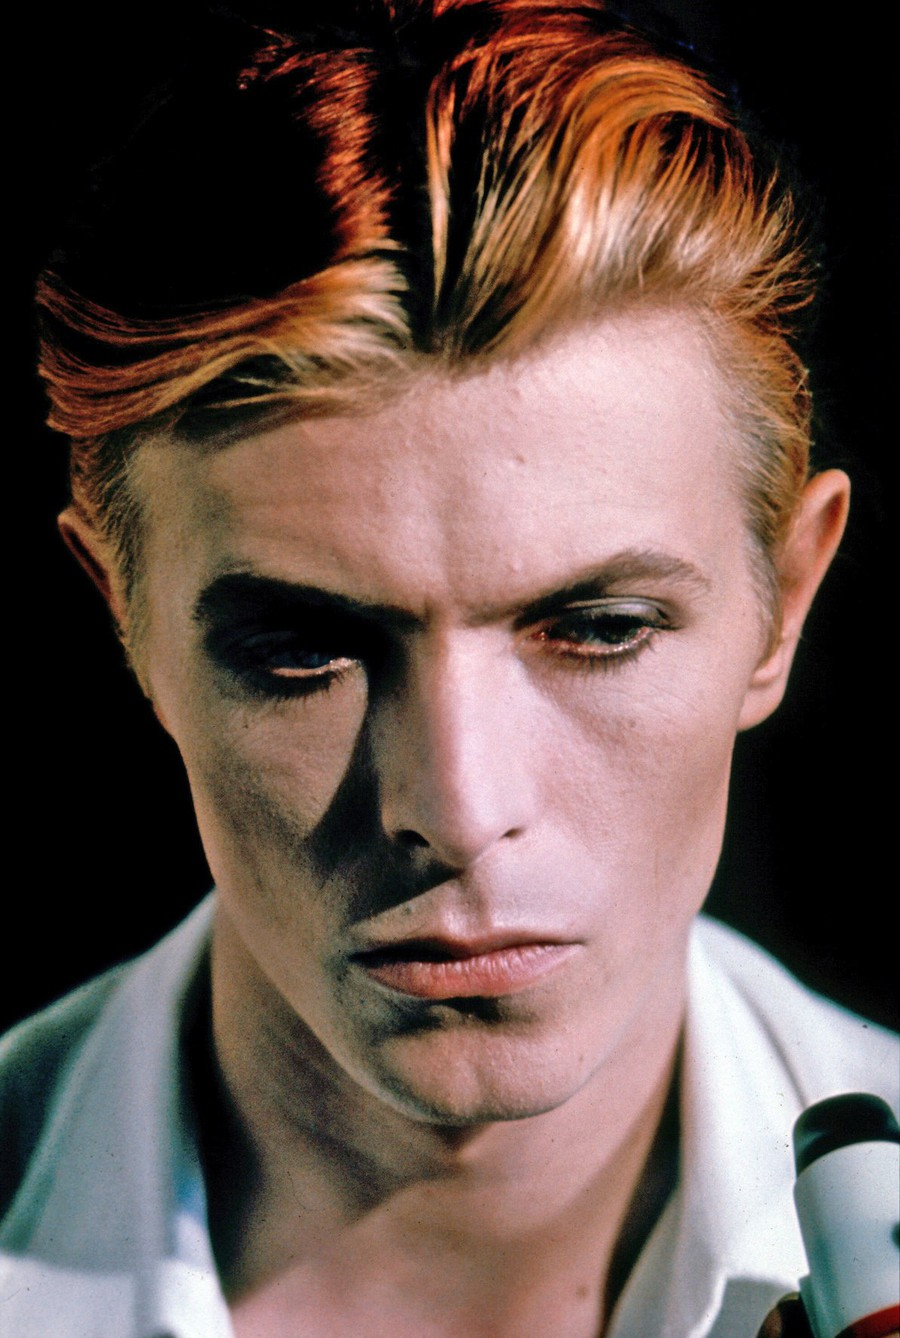 A 1976 promo shot of Bowie from The Man Who Fell to Earth.